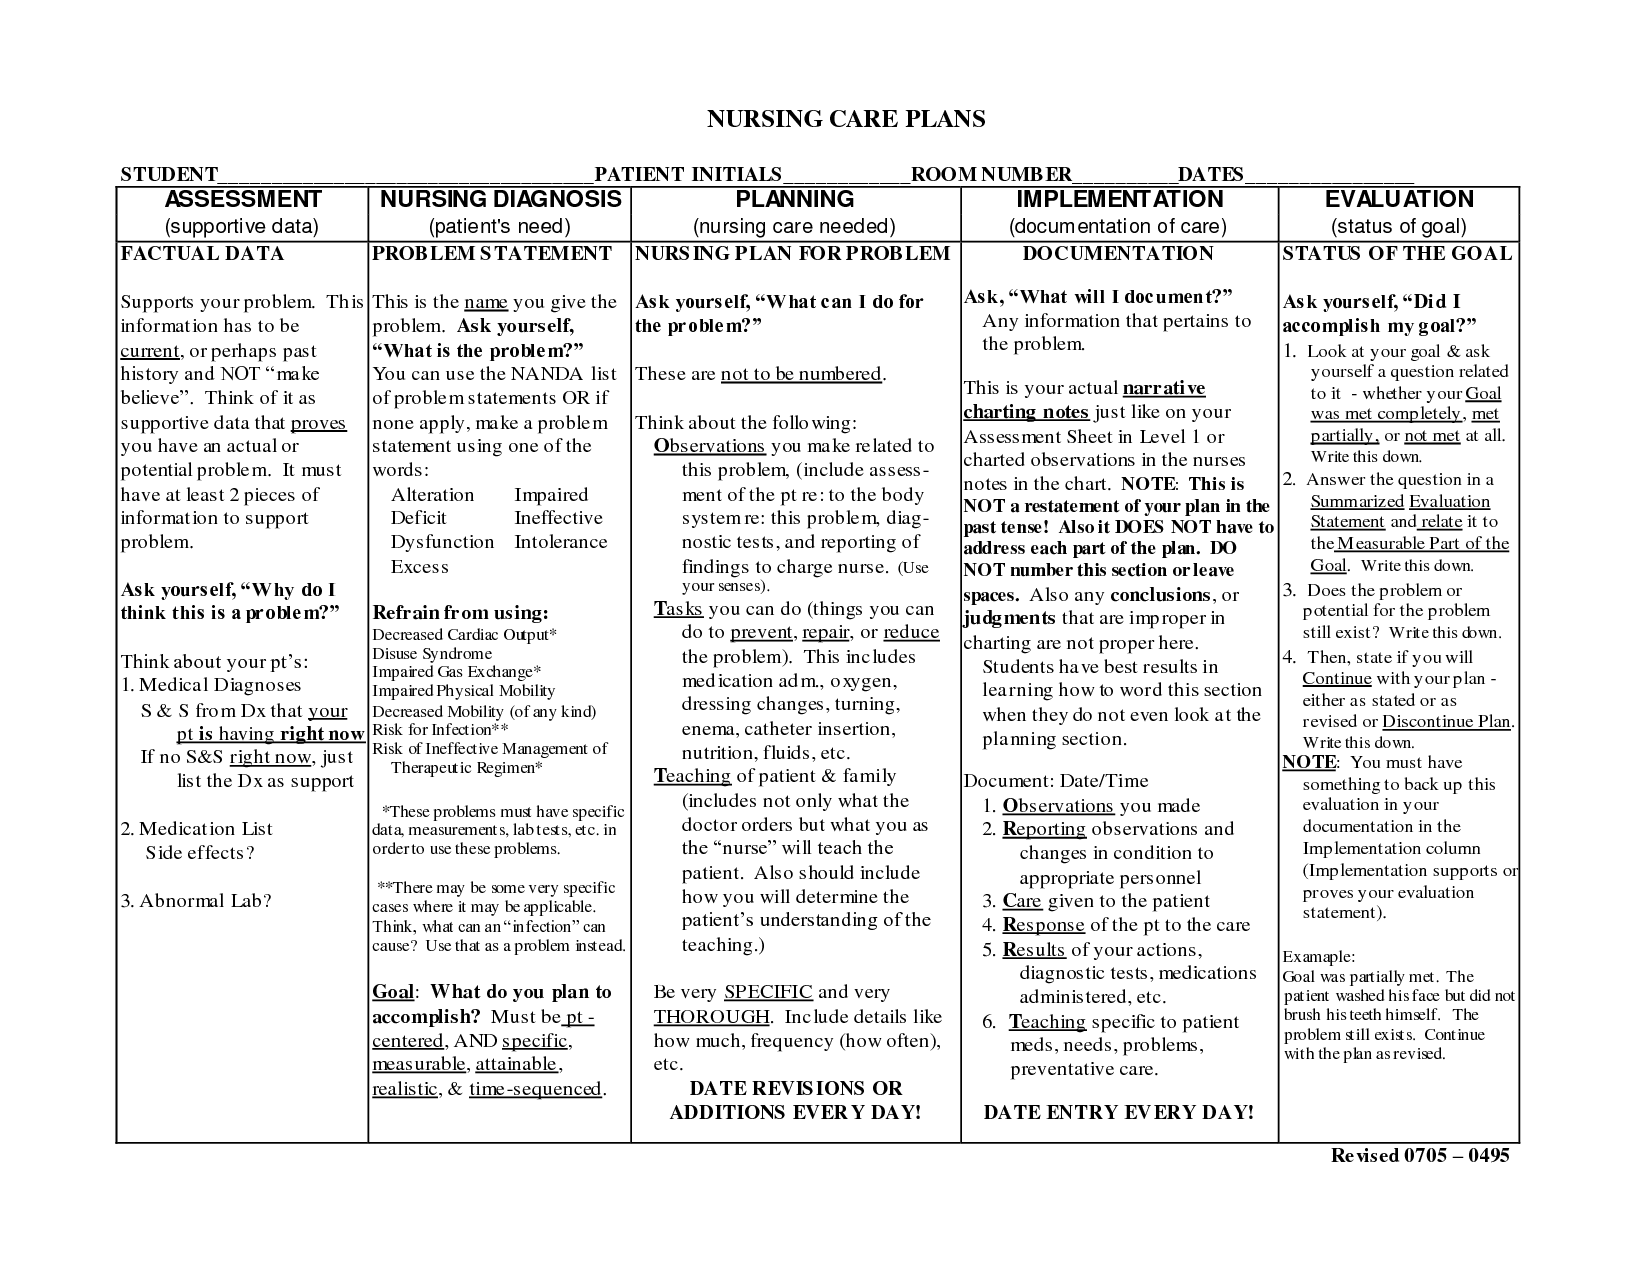 Nursing notes nursing care plans download as doc doc for Wound care plan template